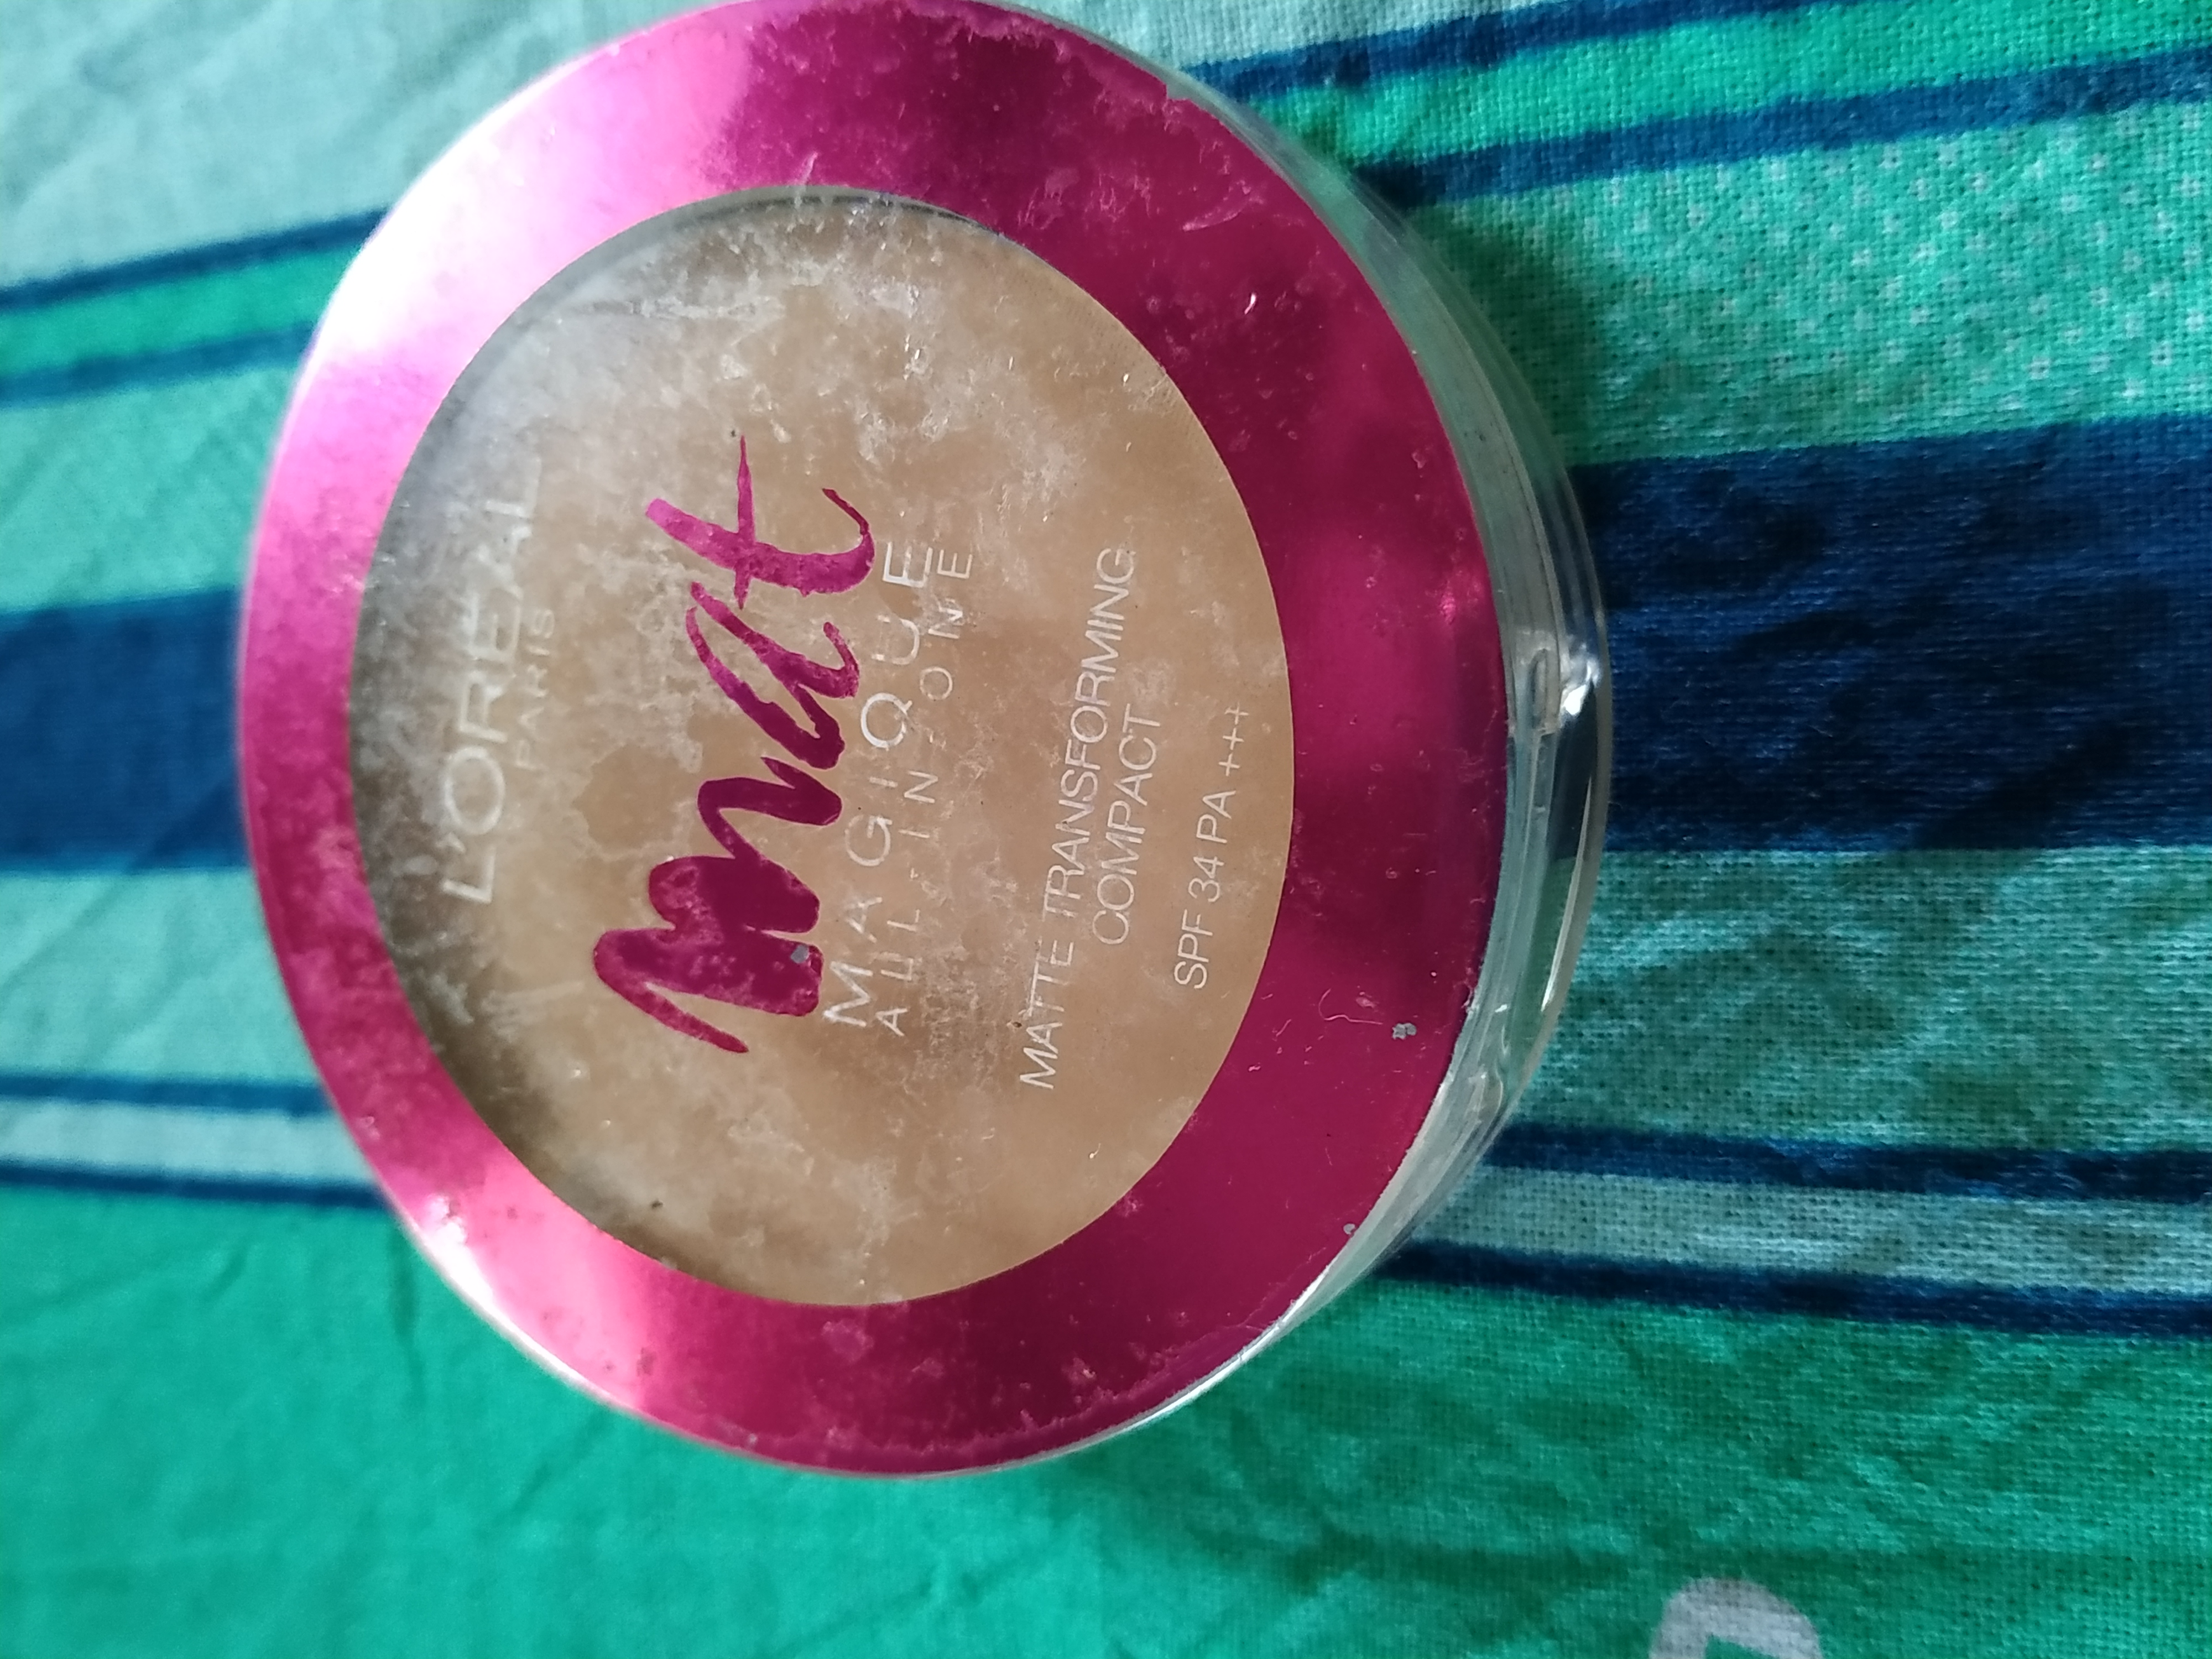 L'Oreal Paris Mat Magique All-In-One Pressed Powder pic 1-A ok ok product.-By sananda9310